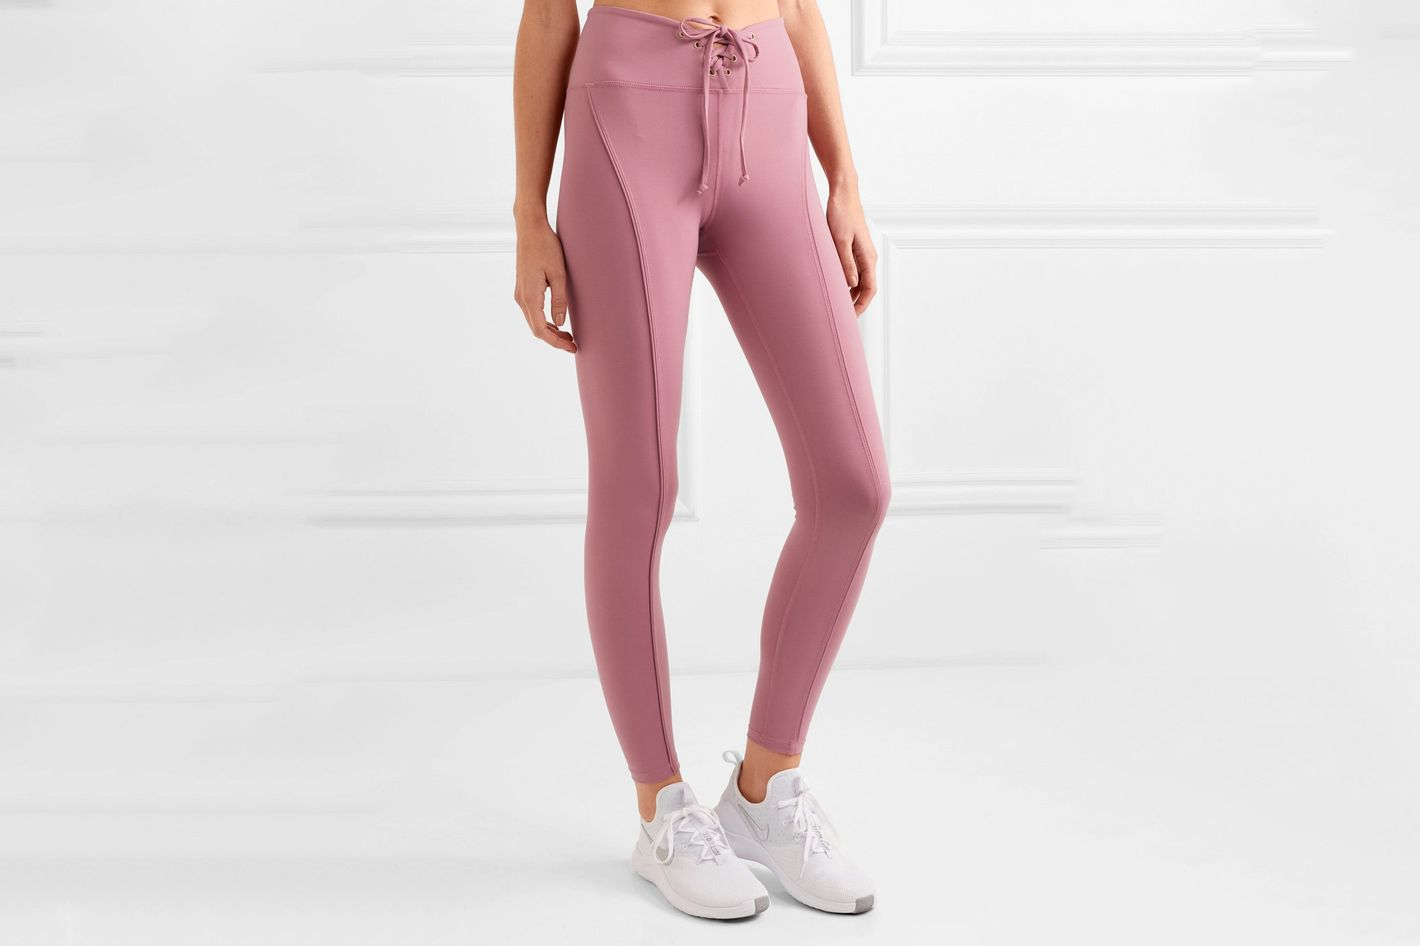 160e96aaafdb2 The 13 Best Workout Leggings for Running and Yoga 2019